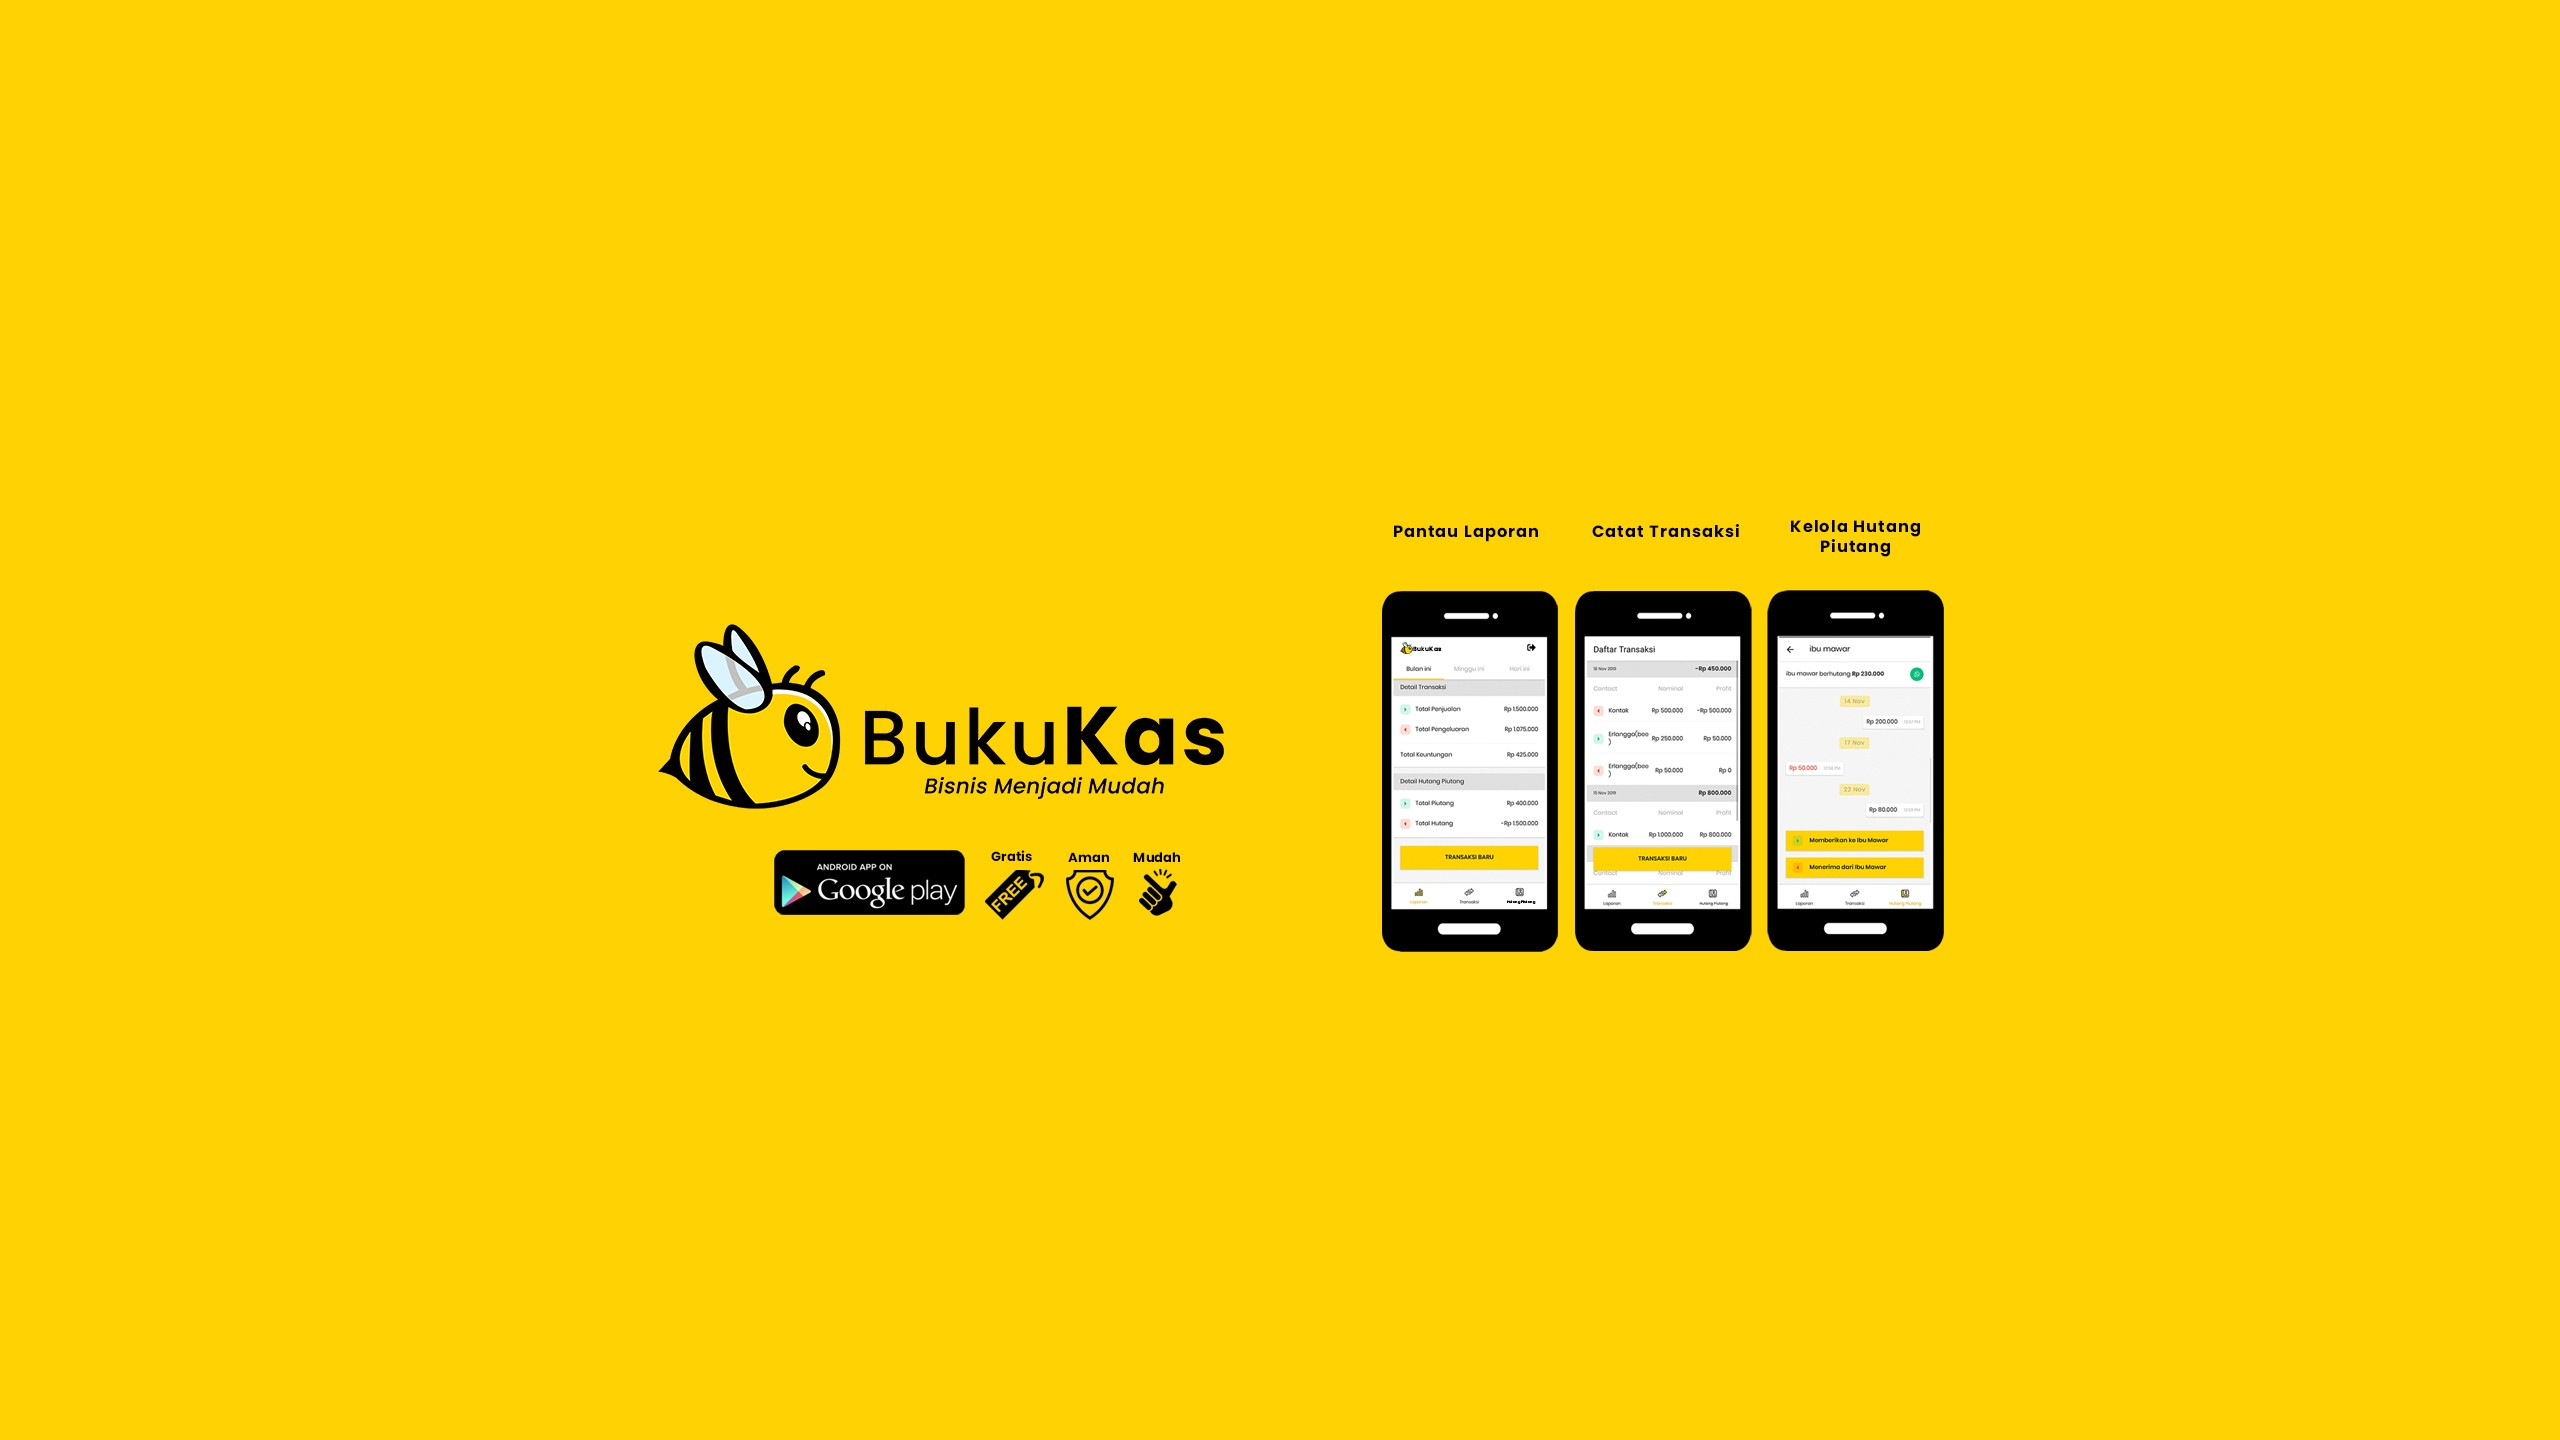 BukuKas Startup Received pre-Series A Funding from Several Investors